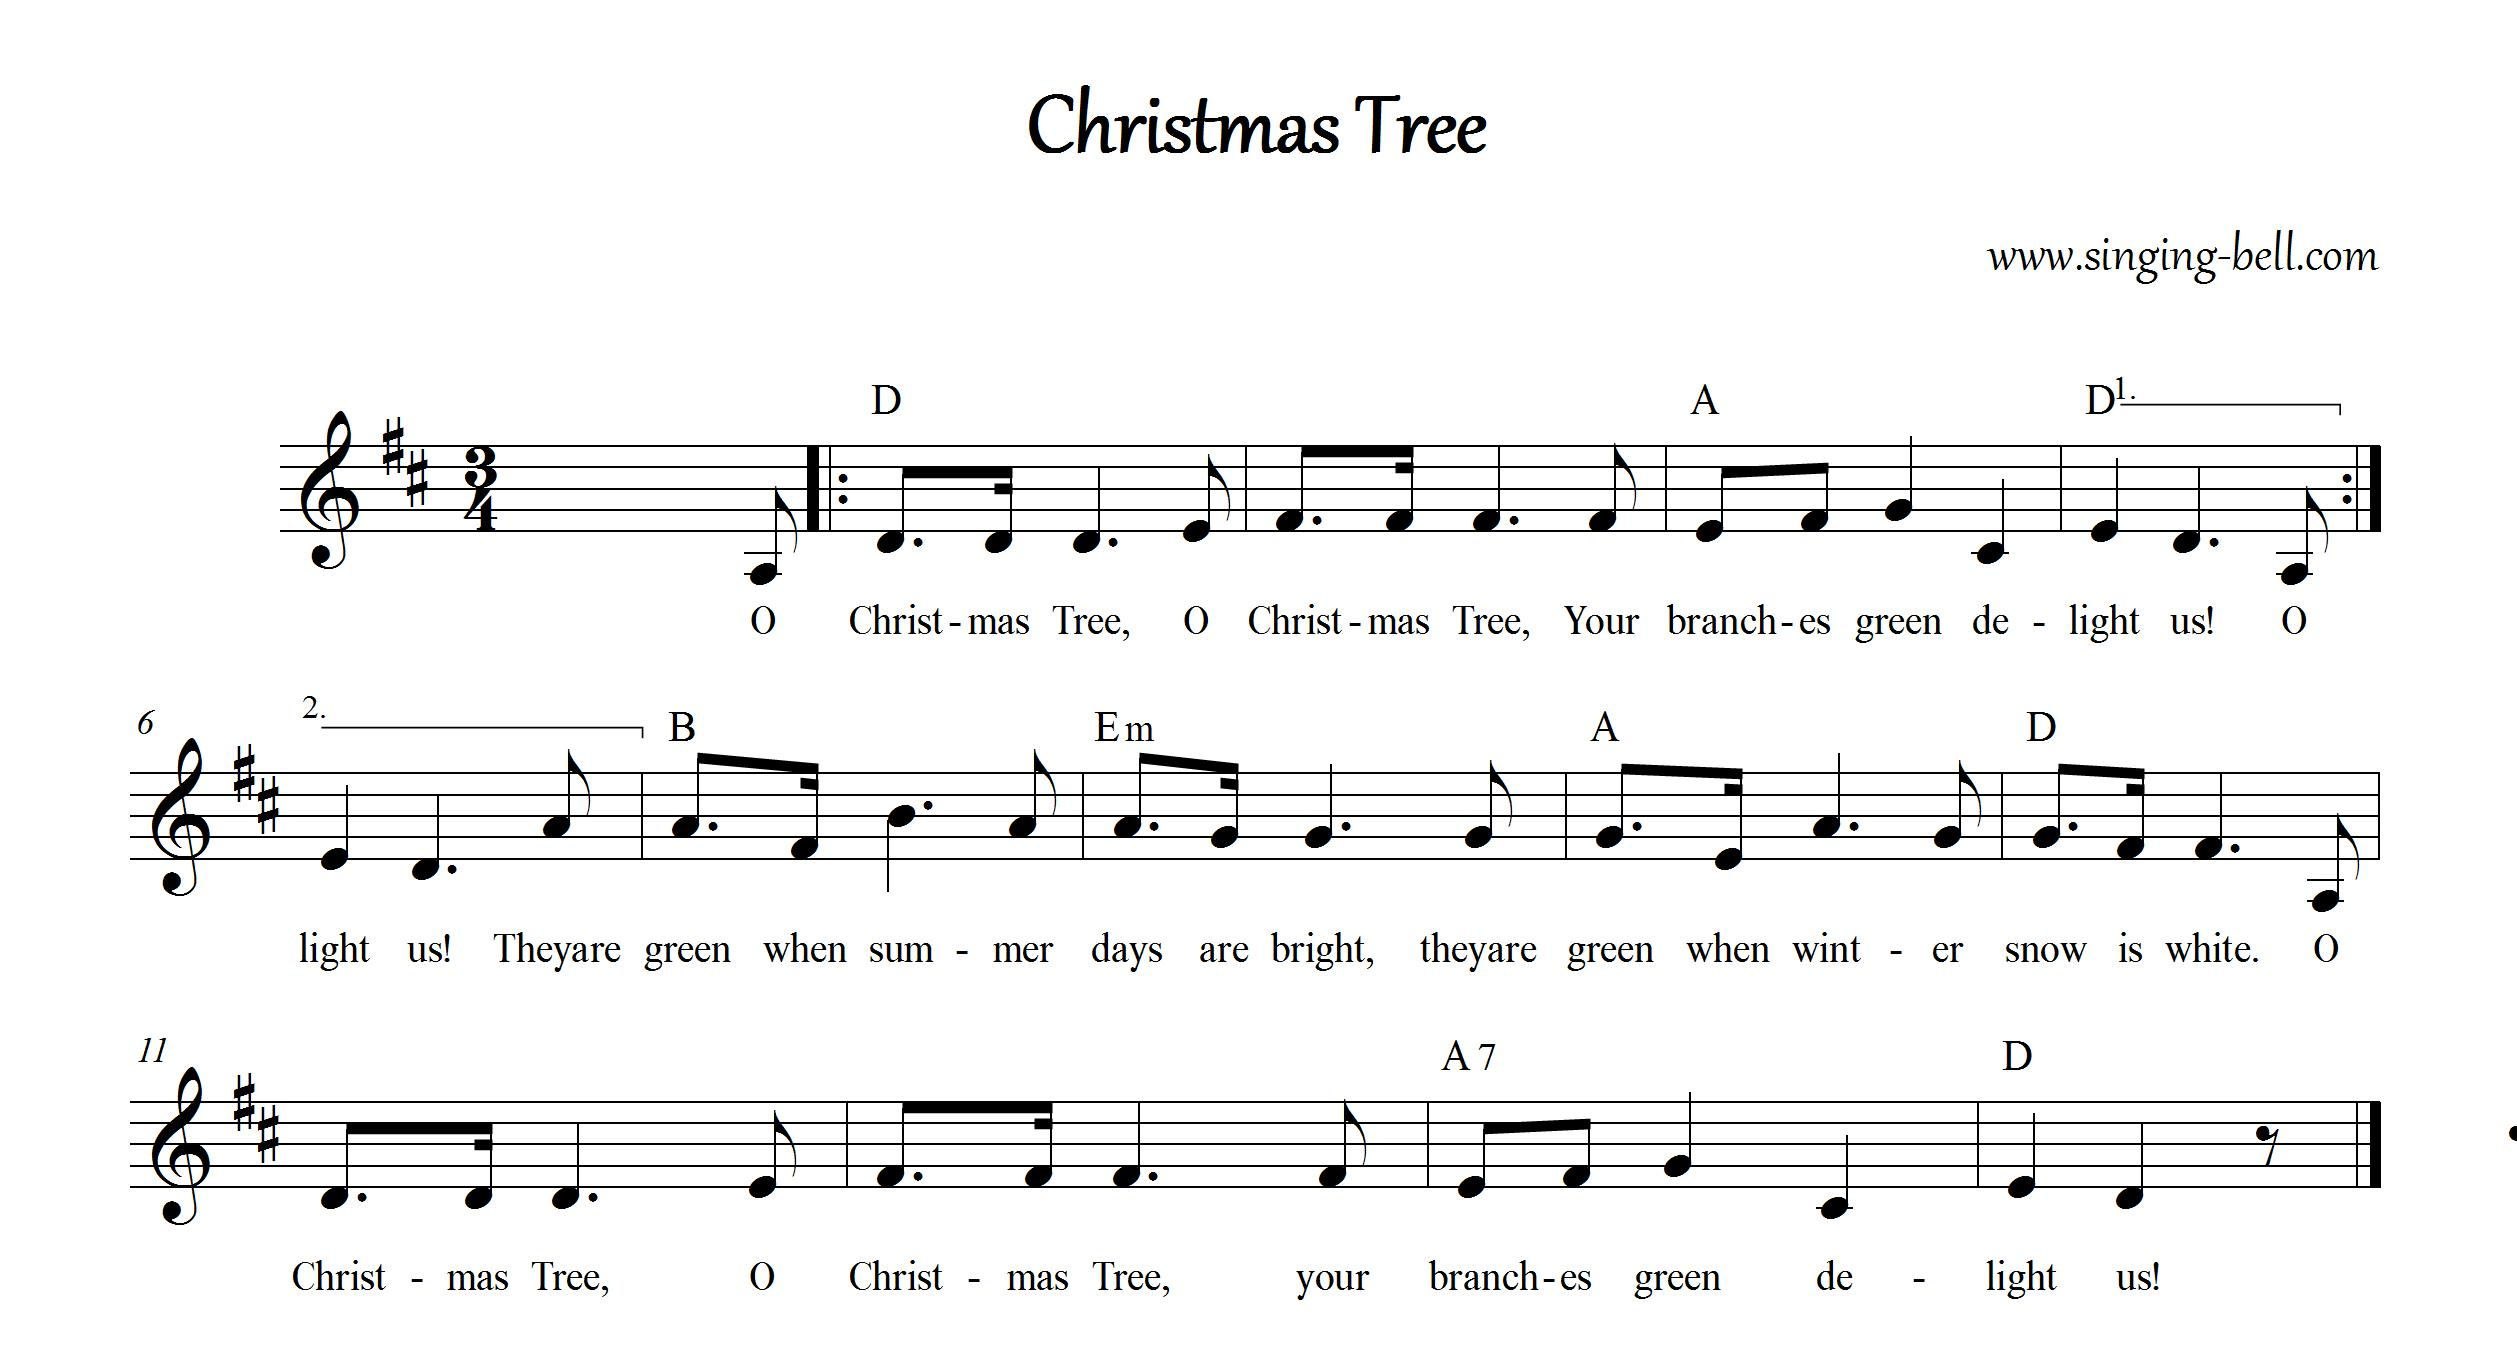 christmas tree_d_singing bell - Oh Christmas Tree How Lovely Are Your Branches Lyrics